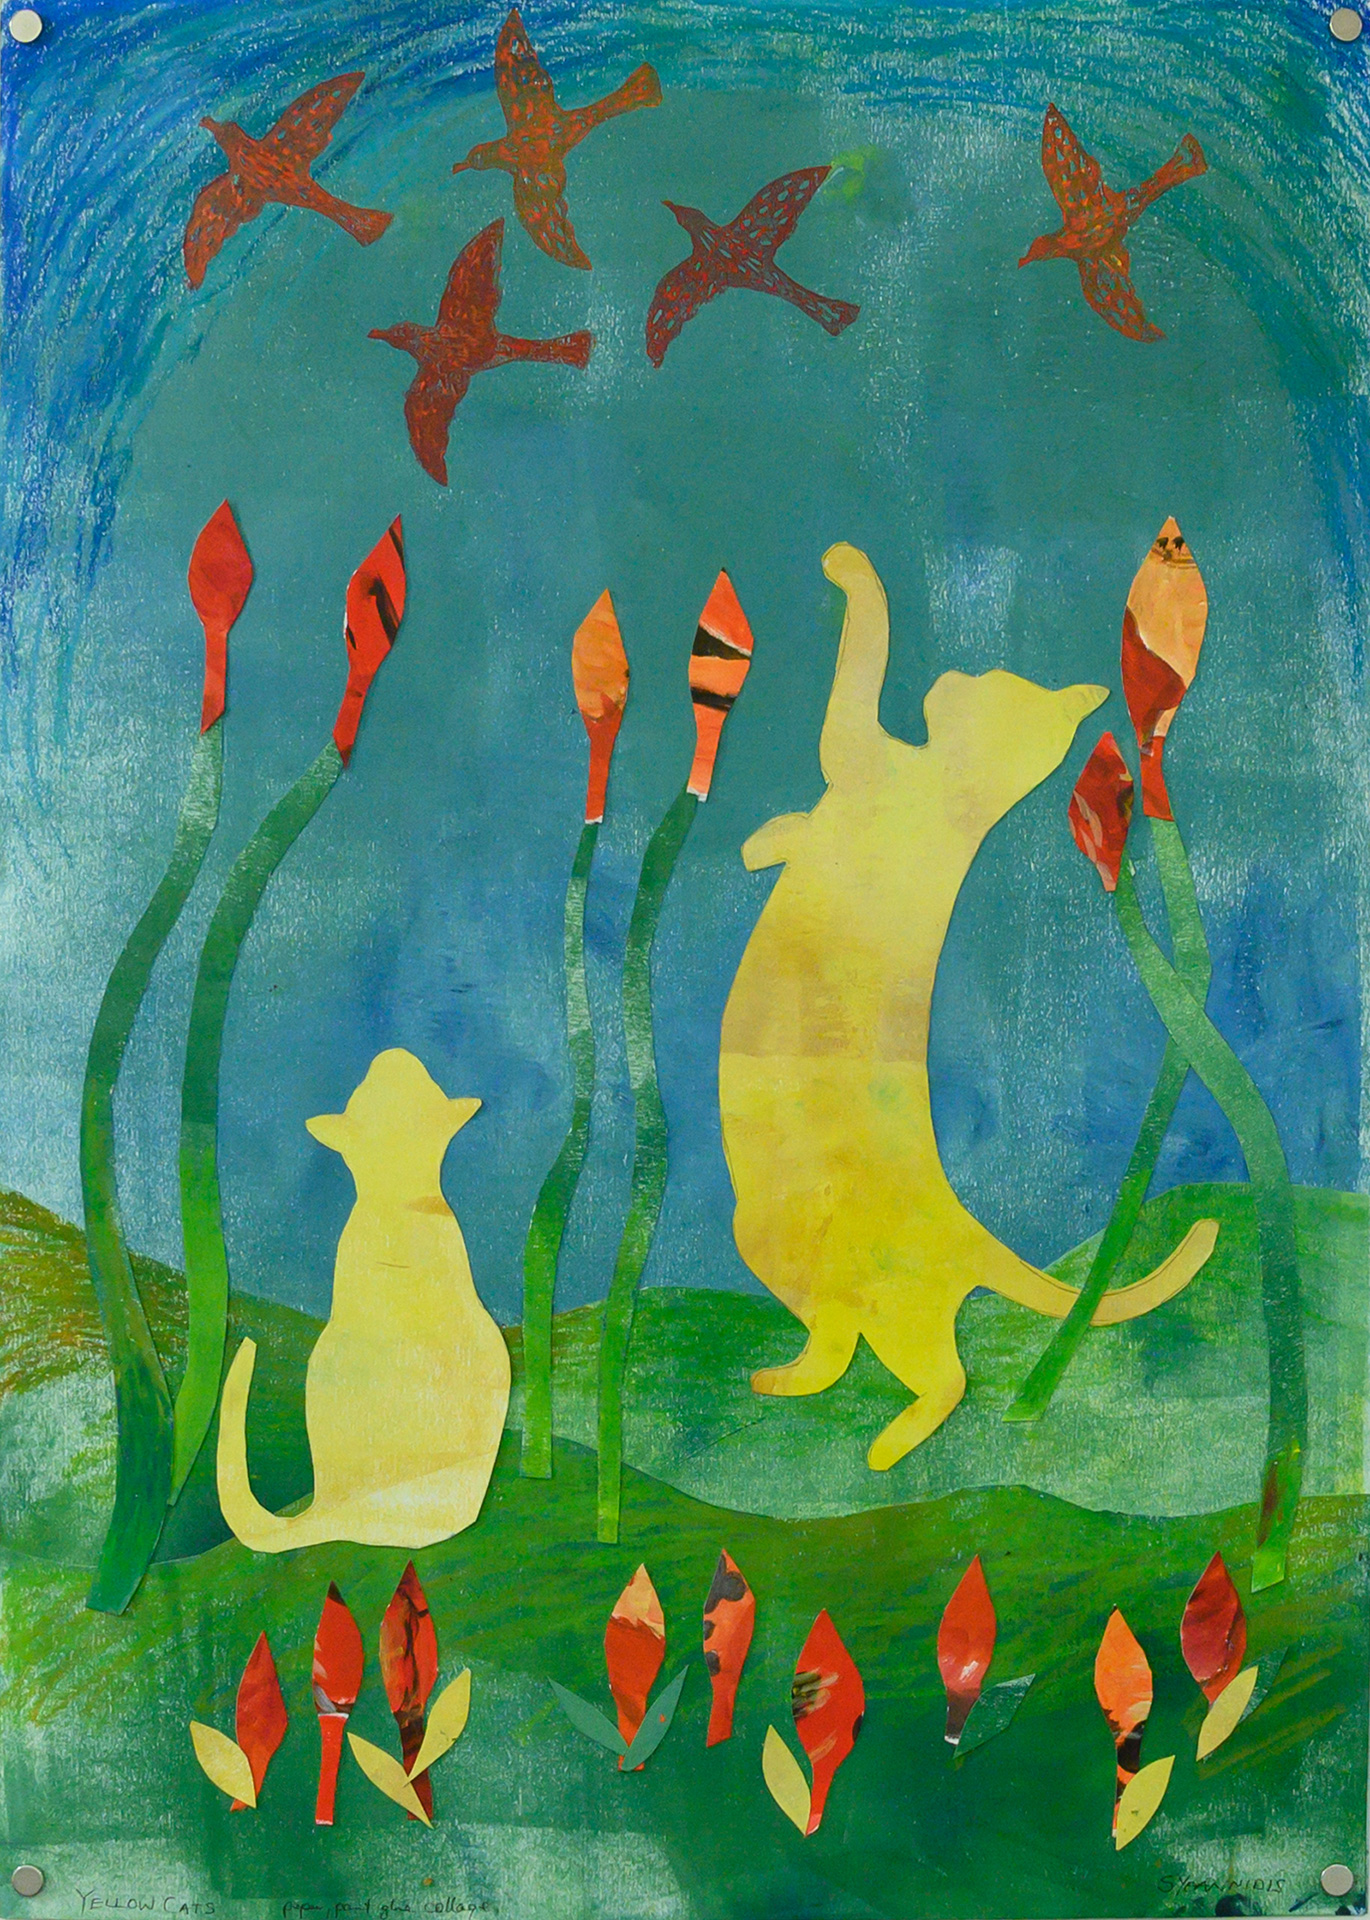 Unframed artwork by Stephanie Yoannidis of a colourful collage featuring two playful yellow cats in green grass and orange/red birds flying in a blue sky